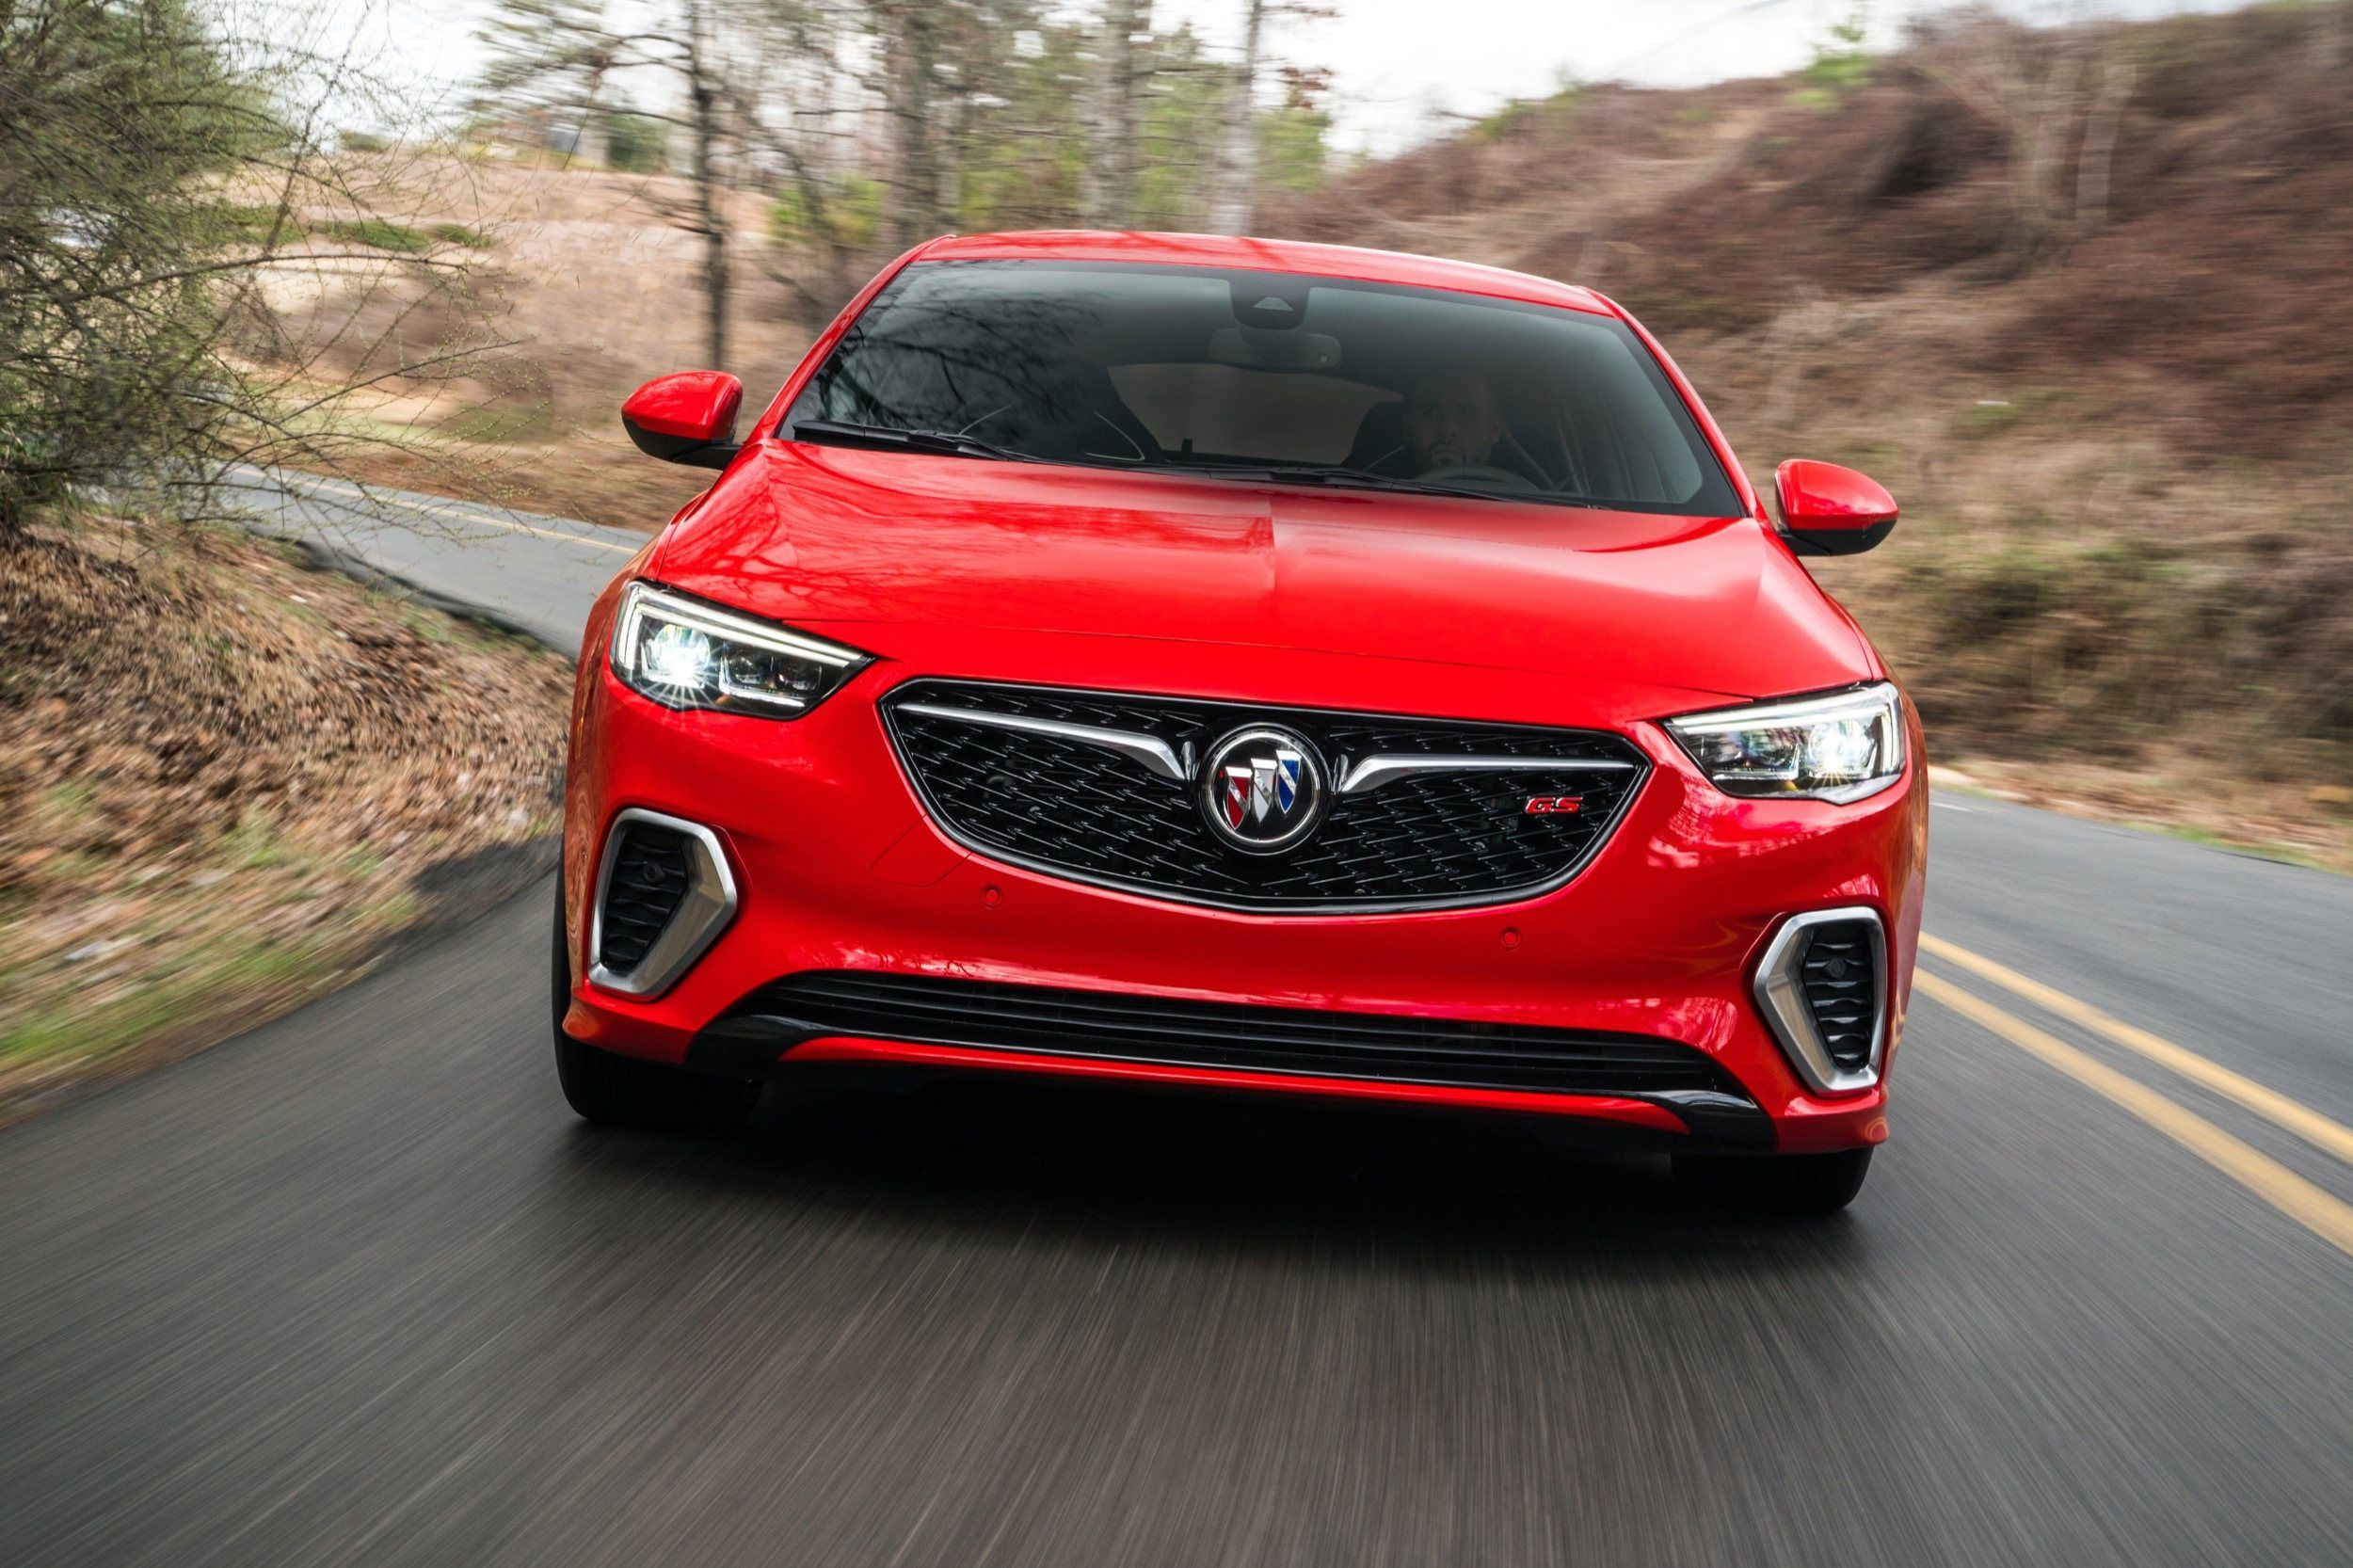 2021 Buick Regal Gs Coupe Images in 2020 | Buick regal gs ...